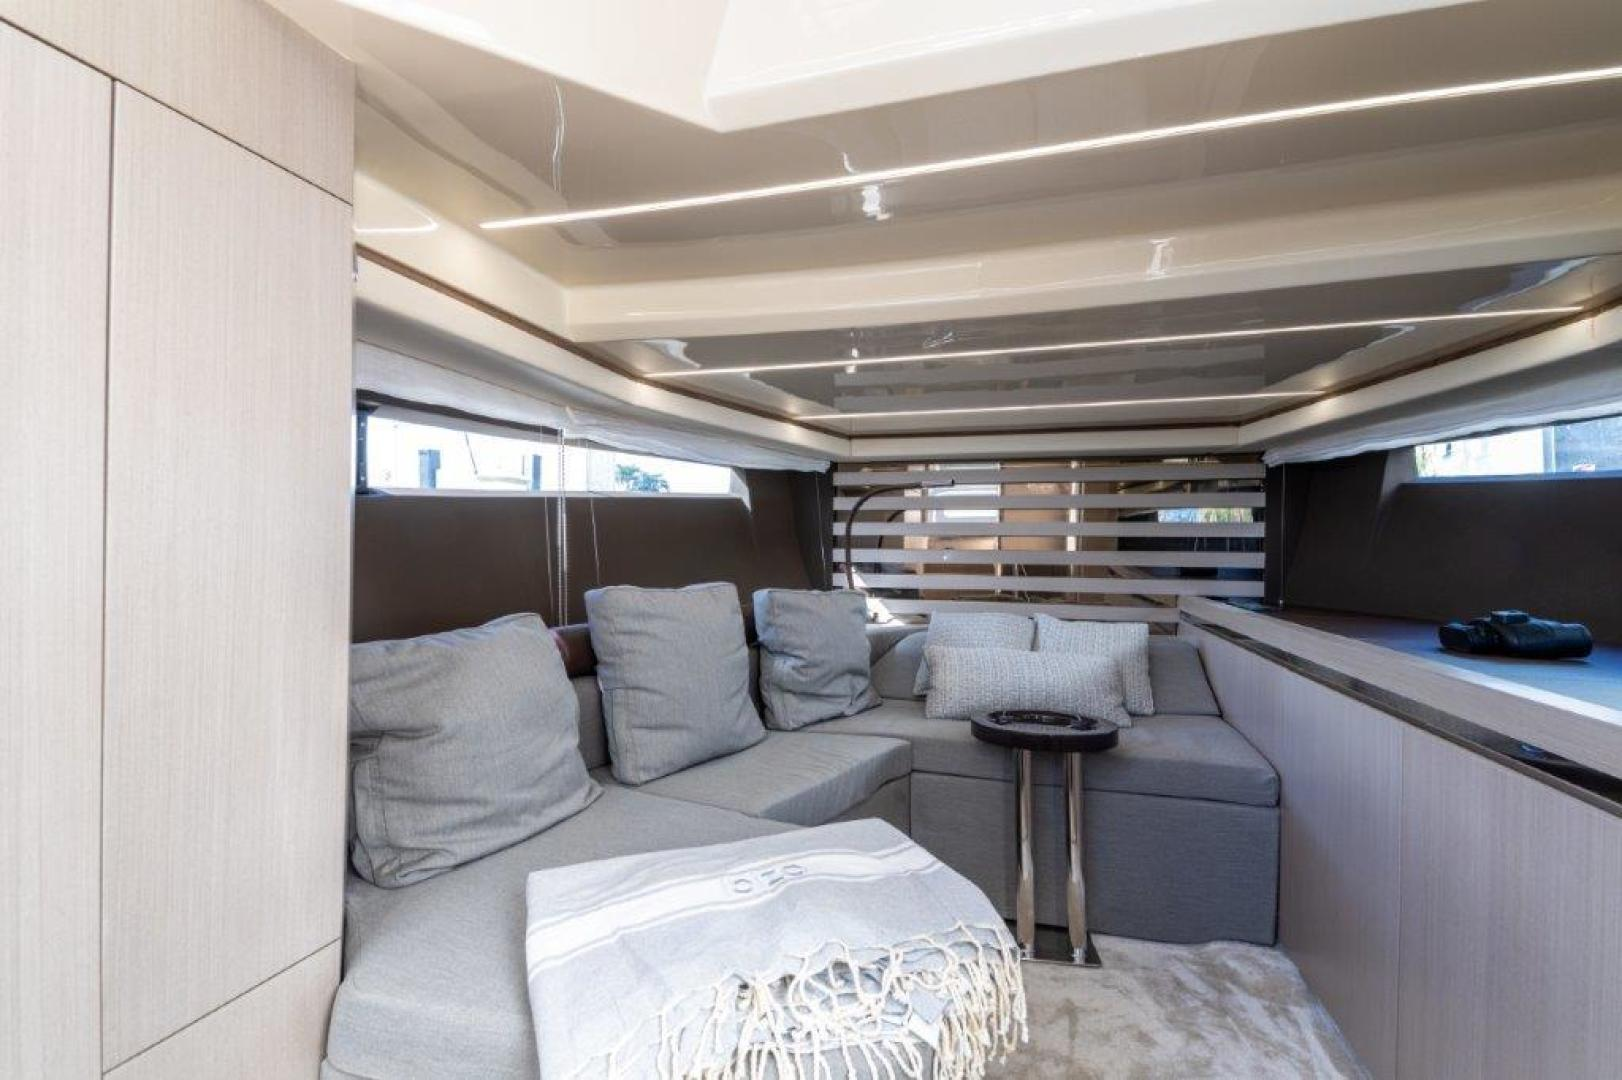 Invictus-370 GT 2018-EOS II Fort Lauderdale-Florida-United States-Cabin Entry-1624935 | Thumbnail